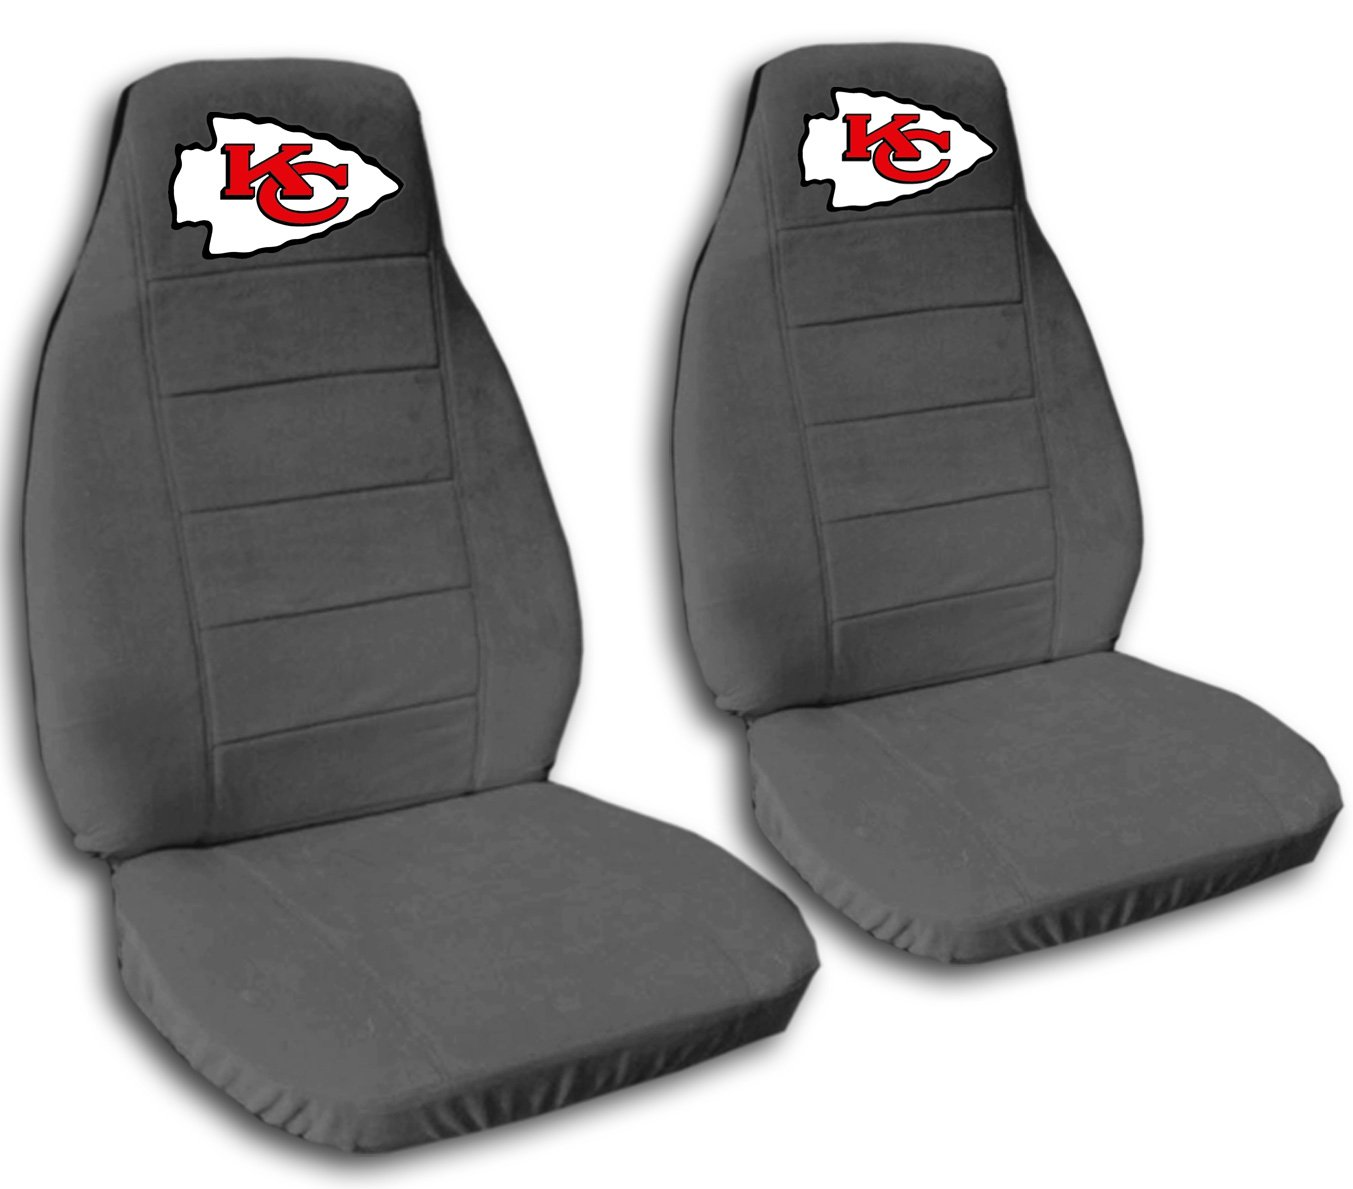 2 Charcoal Kansas City seat covers for a 2007 to 2012 Chevrolet Silverado. Side airbag friendly.